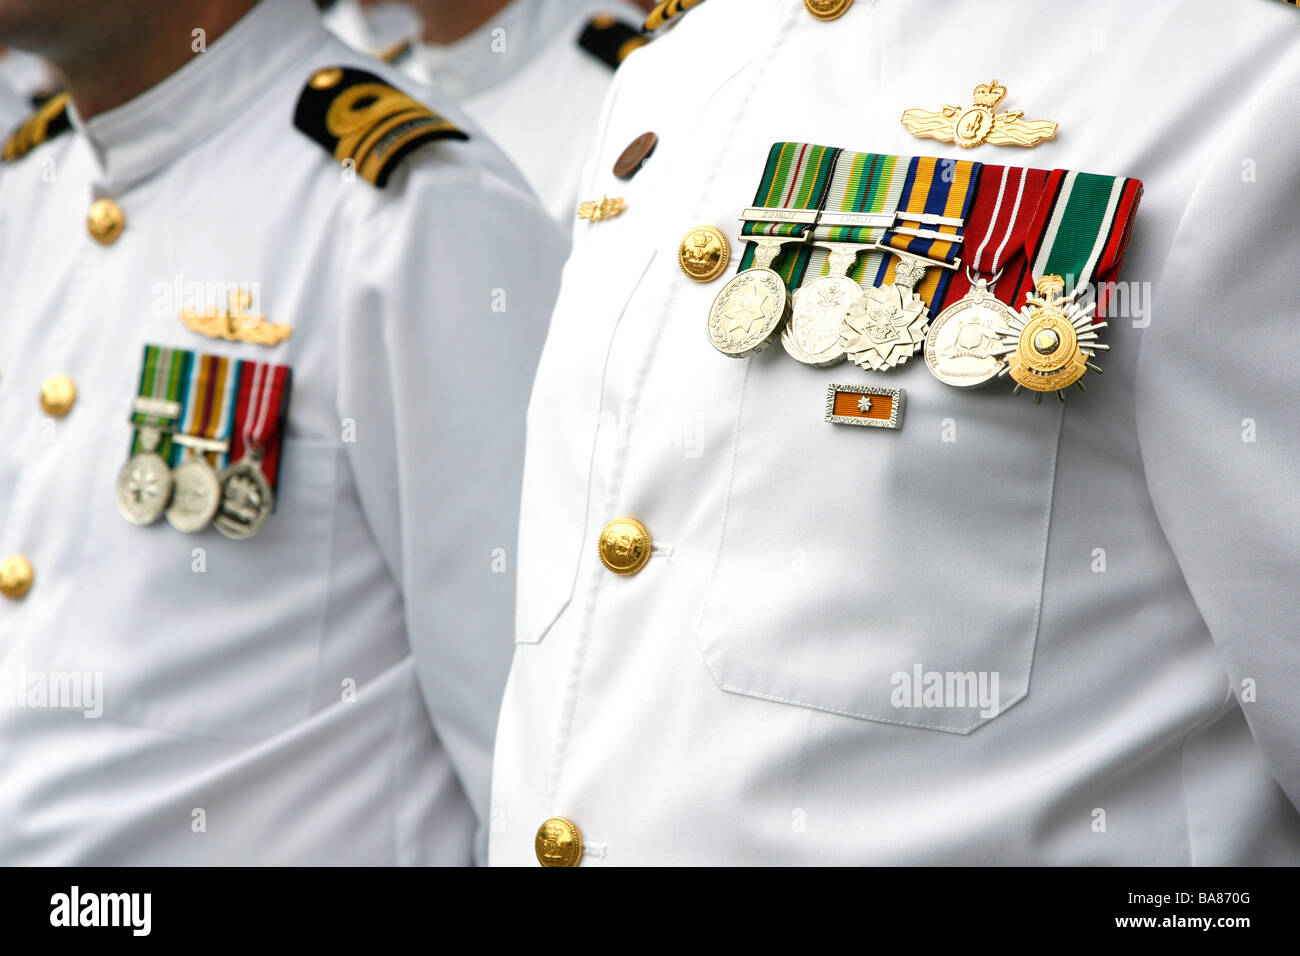 Medals on the chest of a member of the Australian Navy. - Stock Image